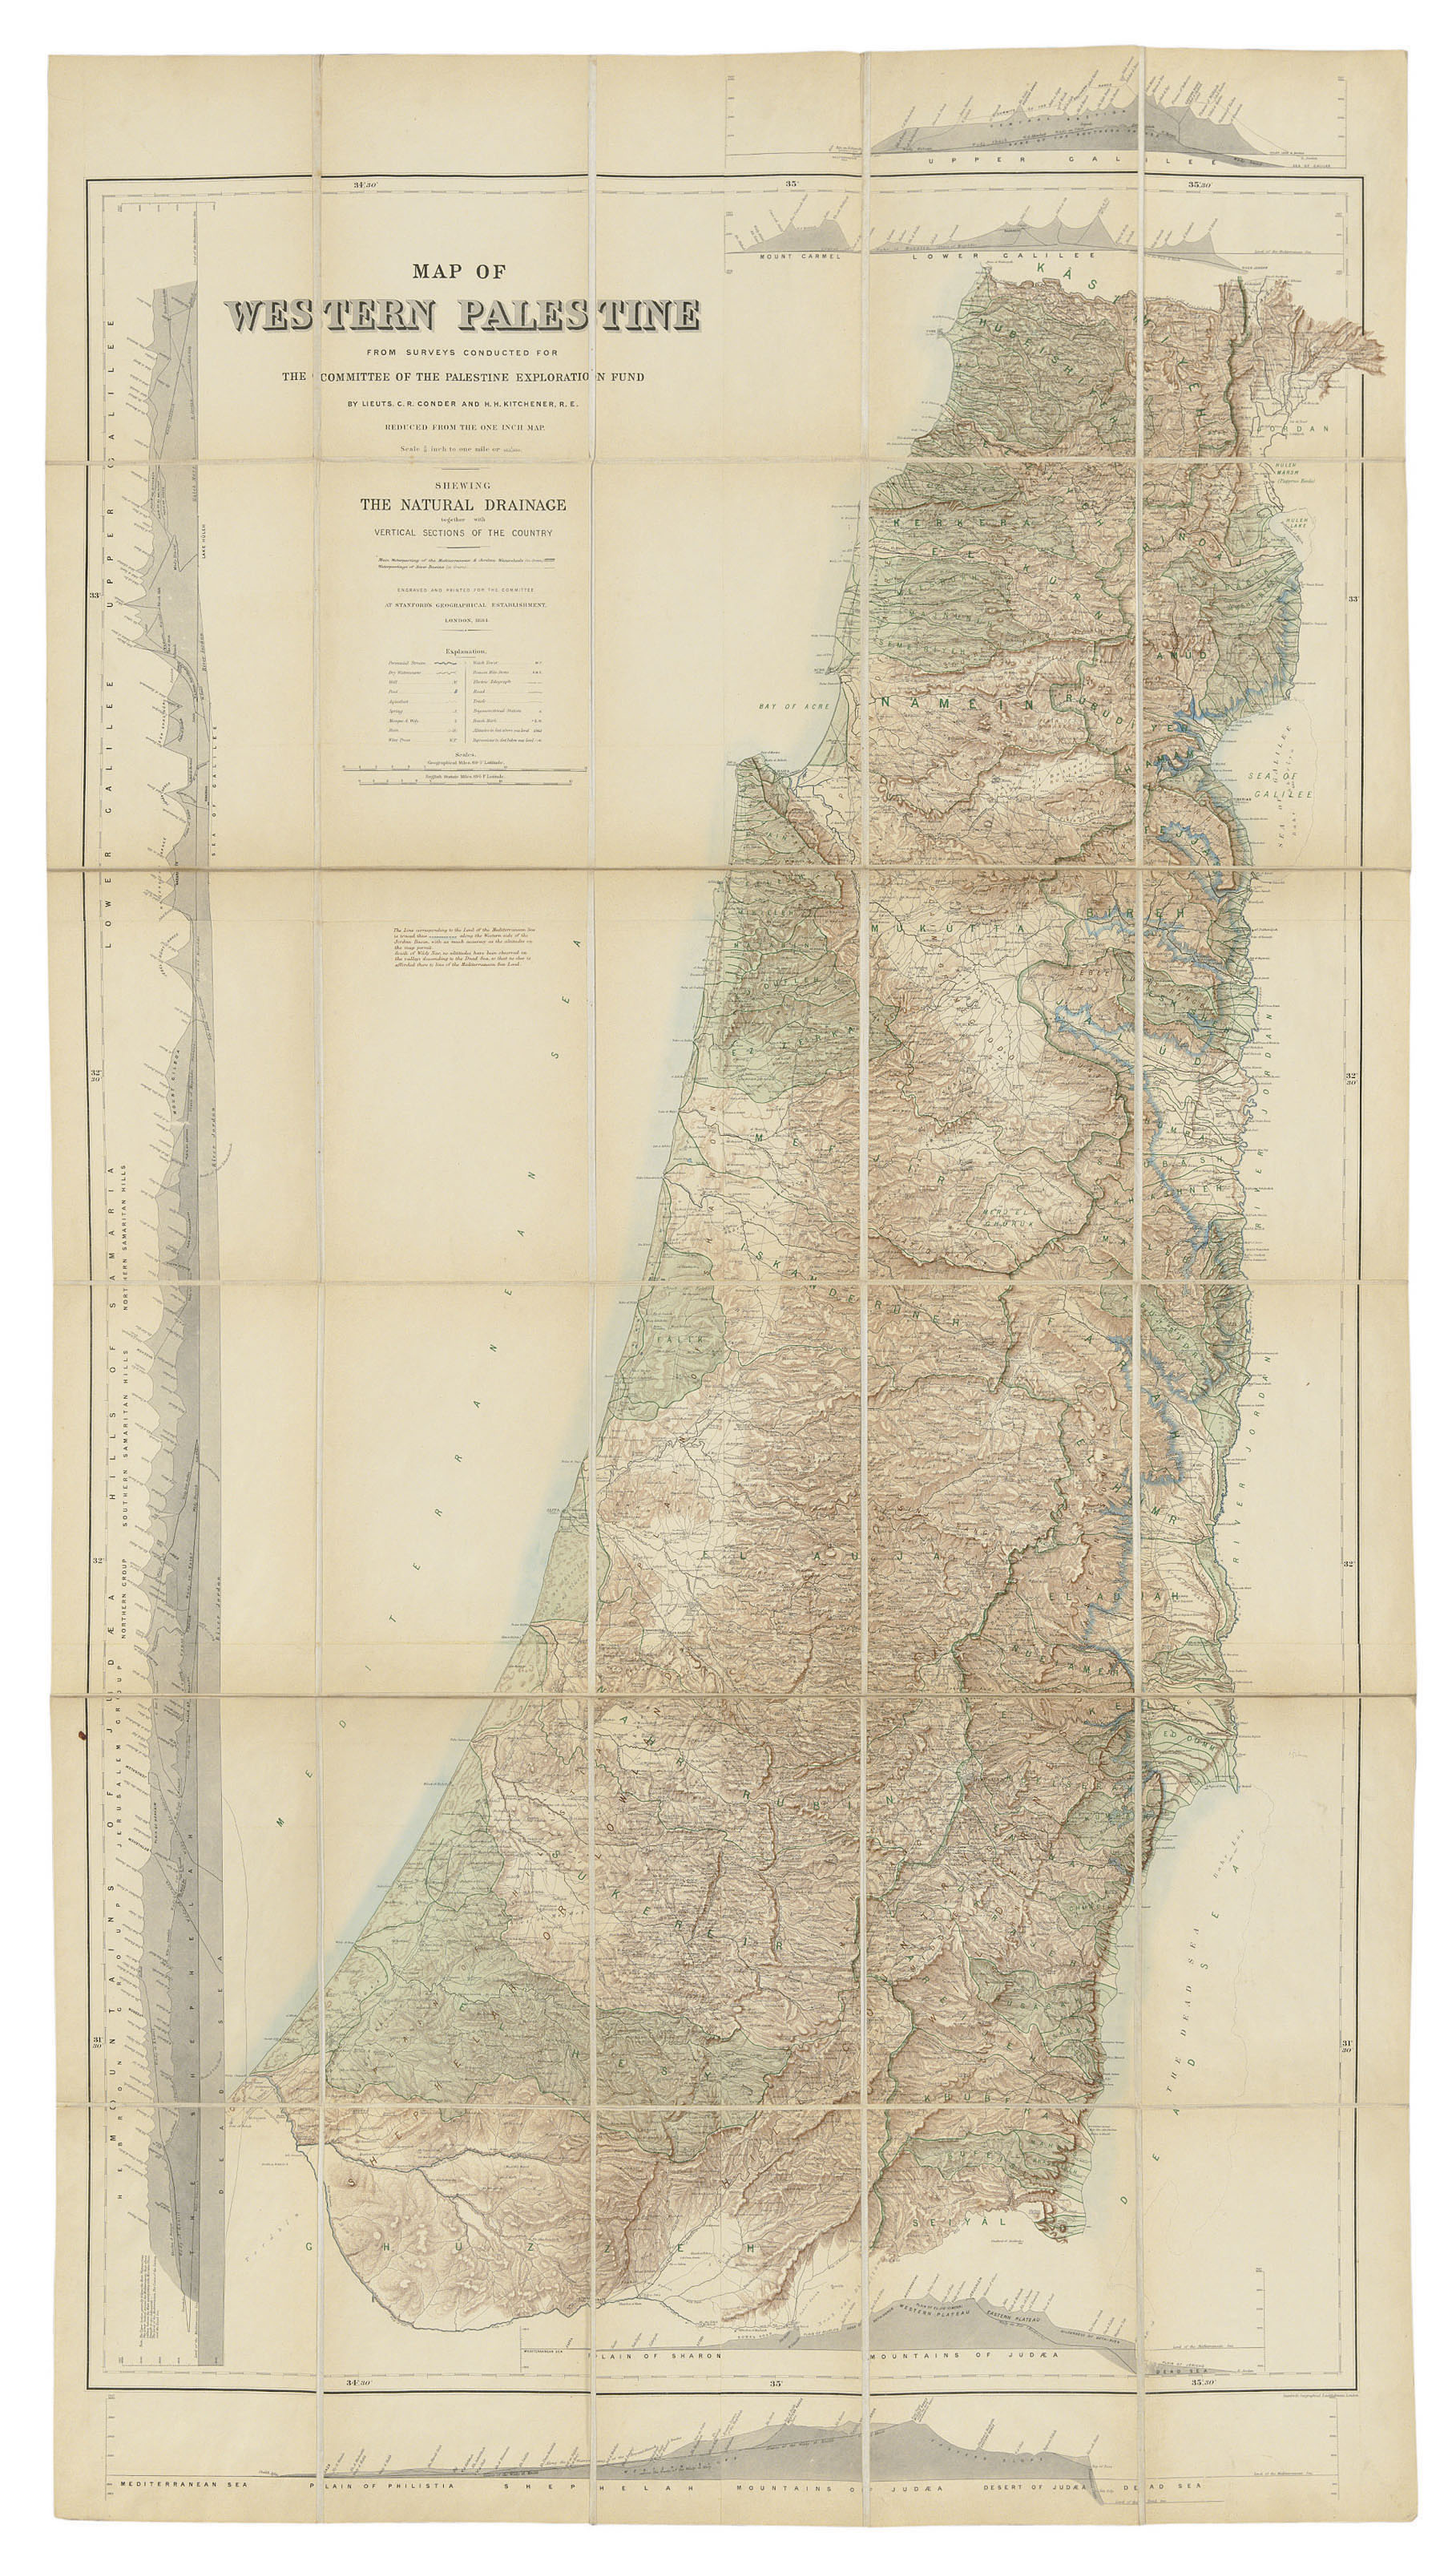 Sections Of London Map.Conder C R And H H Kitchener Map Of Western Palestine